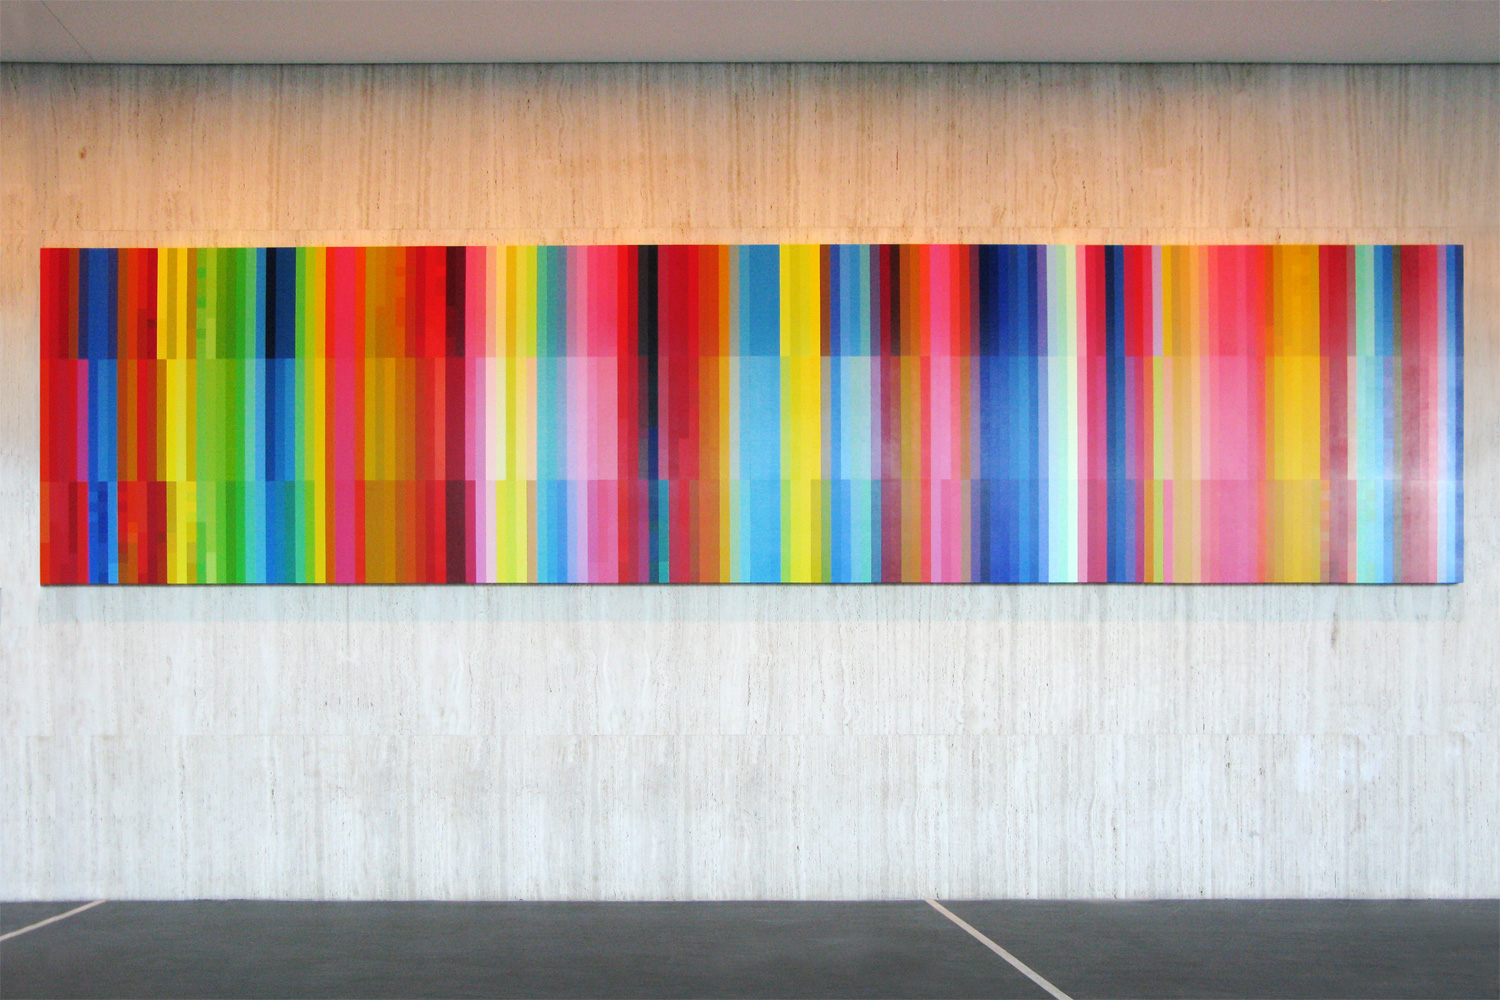 Haze (Spectrum Shift),  2008 Synthetic polymer paint on ten archival wooden panels 264 x 119.6 x 75cm each, 264 x 1196 x 75cm overall Architects: Harry Seidler & Associates